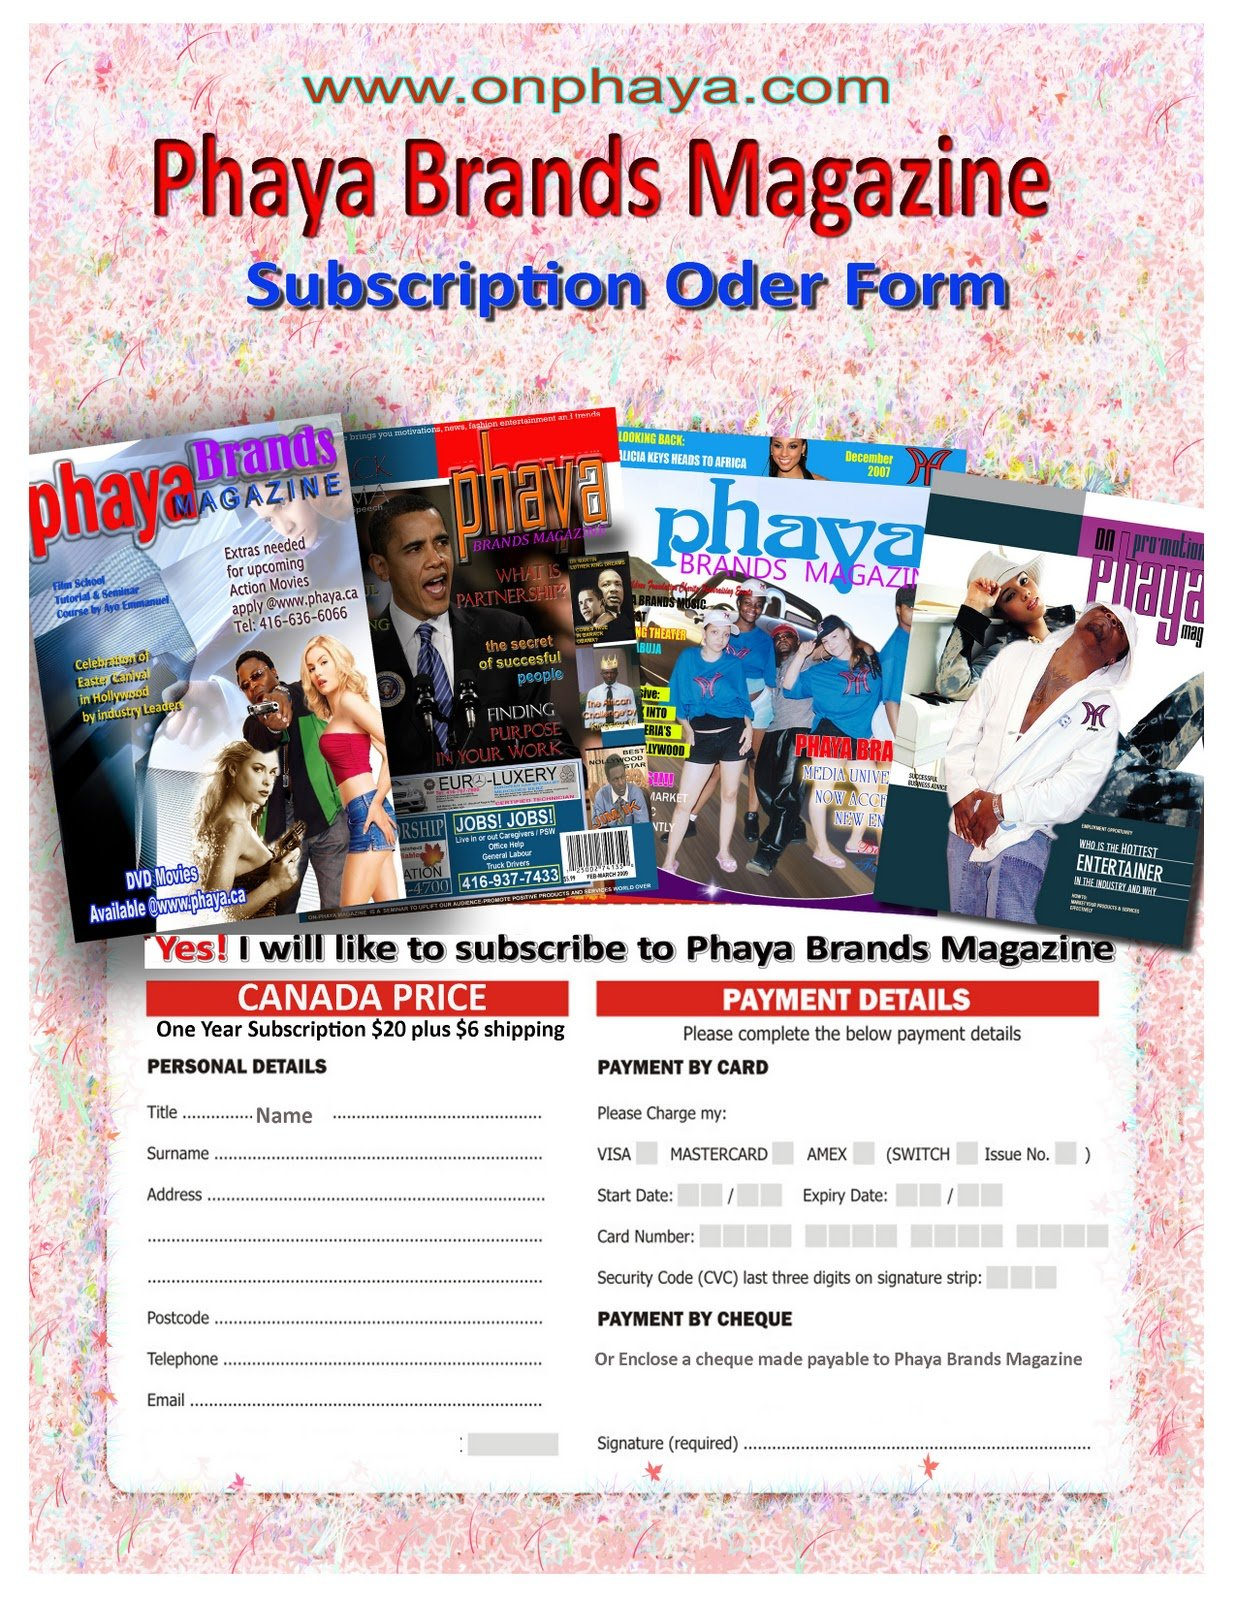 Magazine Subscription Order Form Image 1236x1600